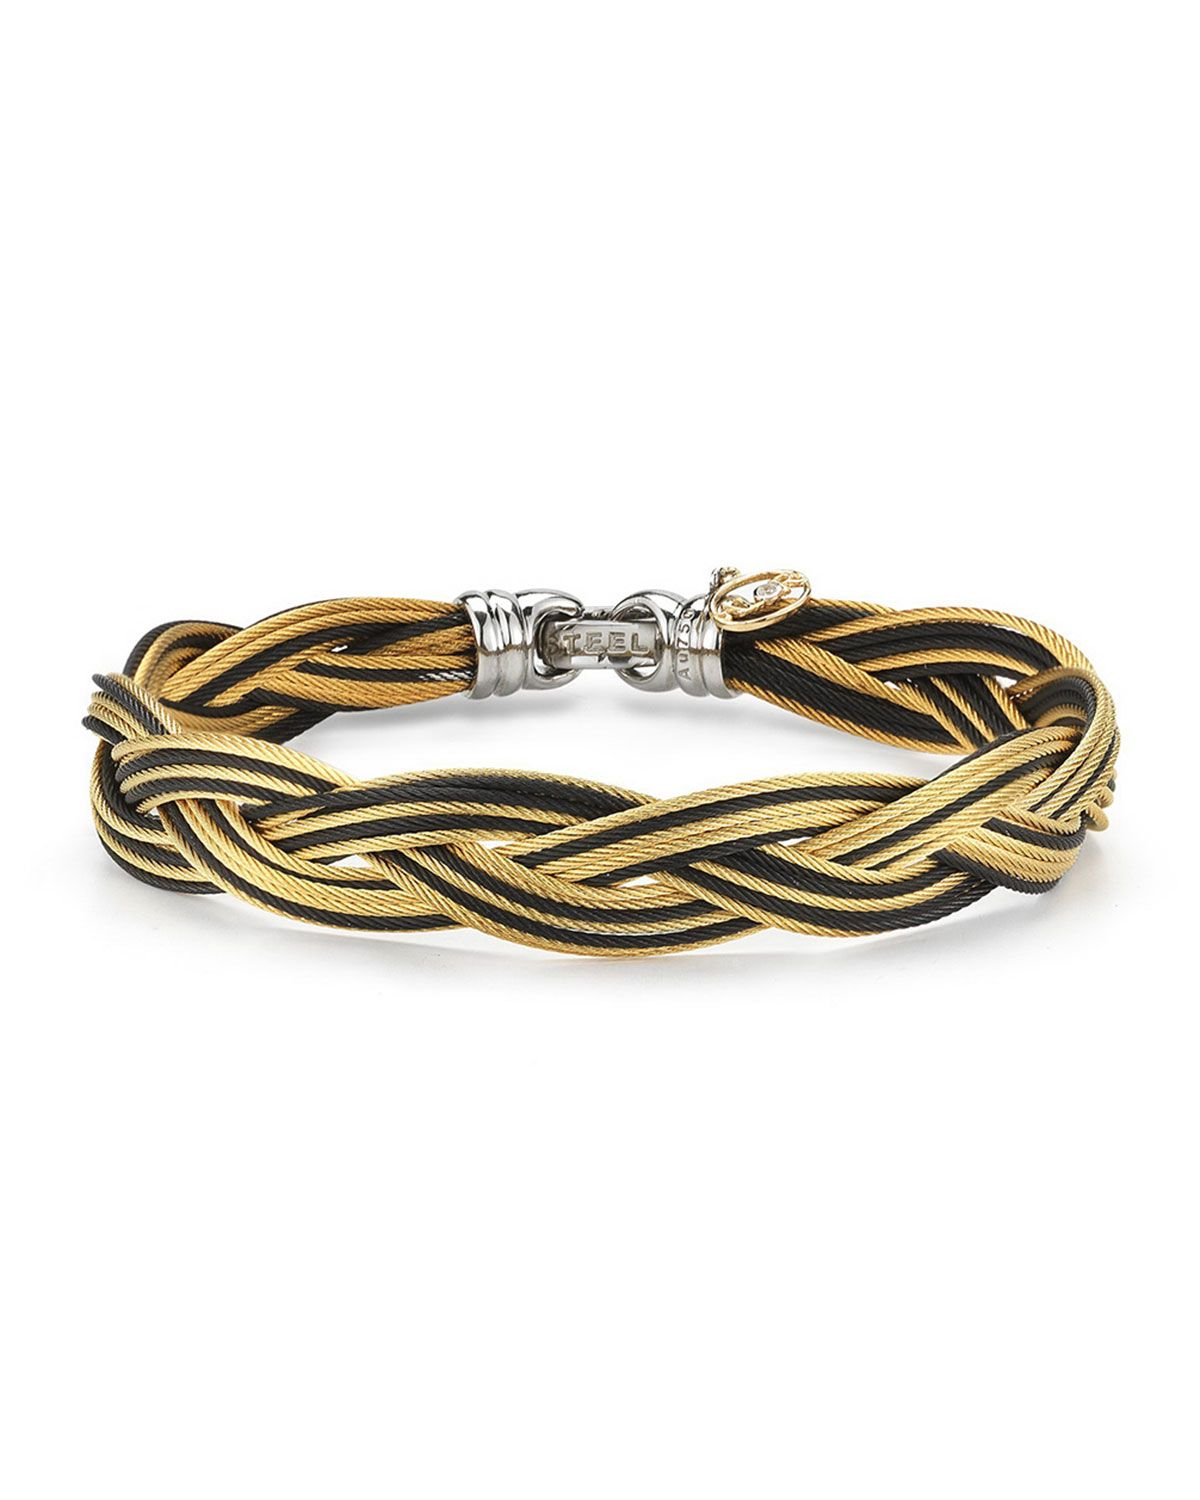 Braided stainless steel microcable bracelet blackyellow cable